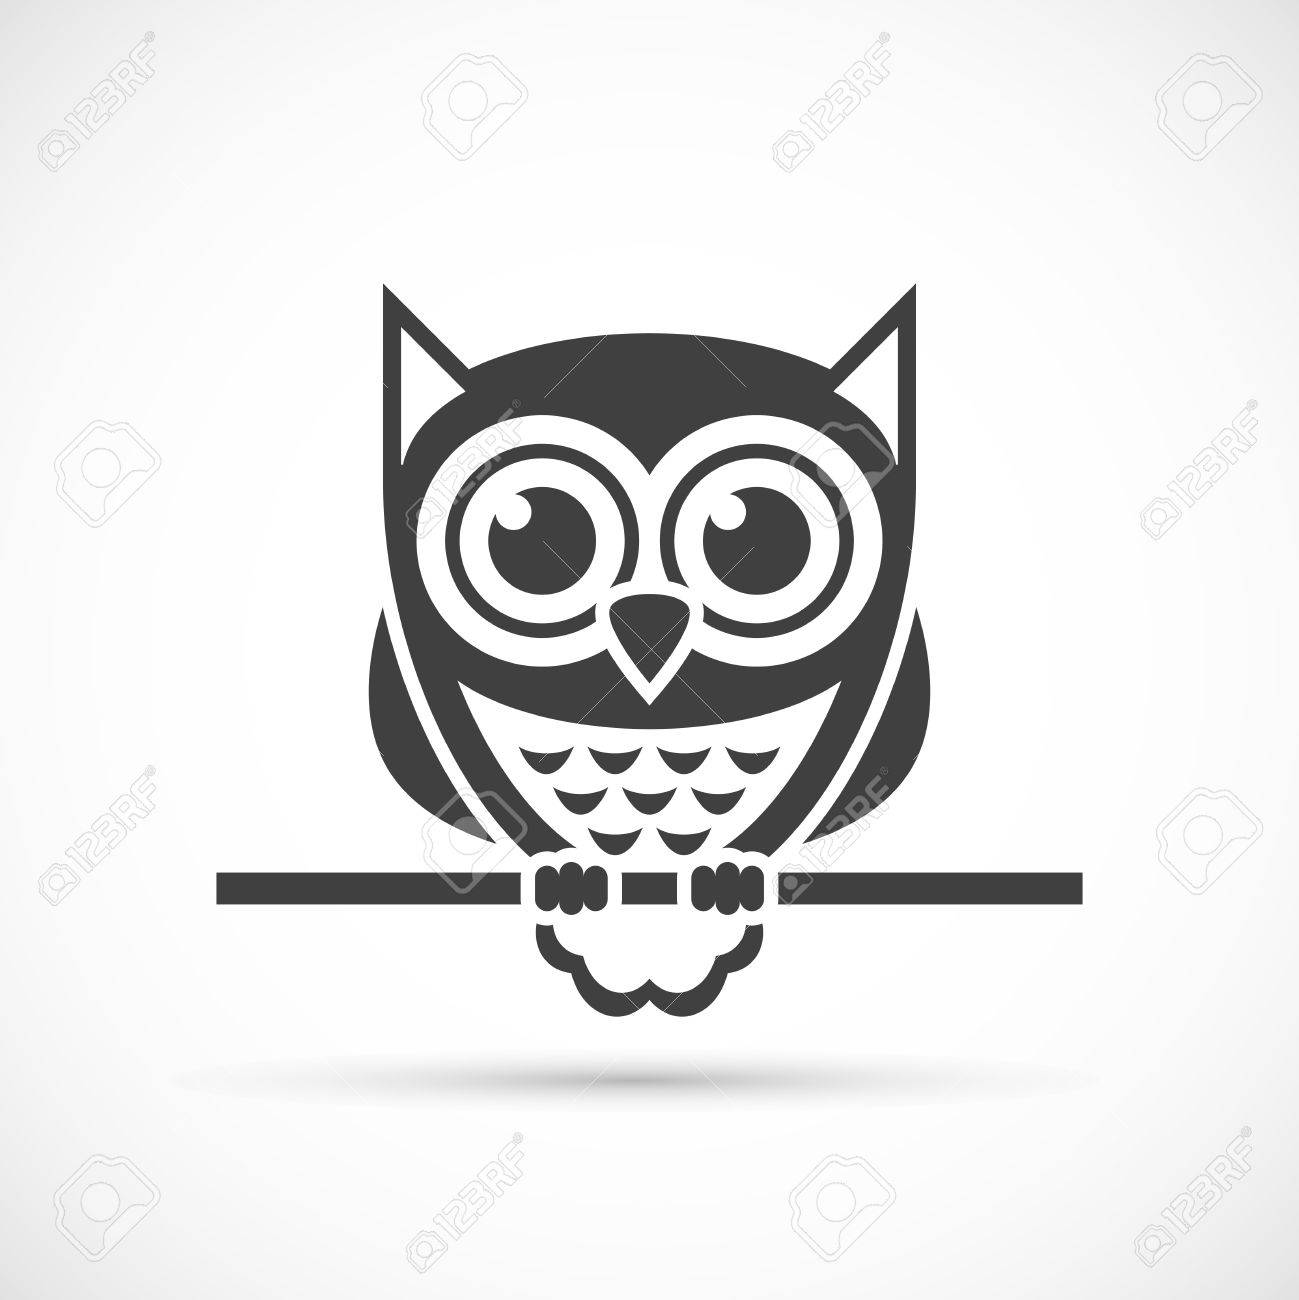 owl icon. halloween illustration royalty free cliparts, vectors, and